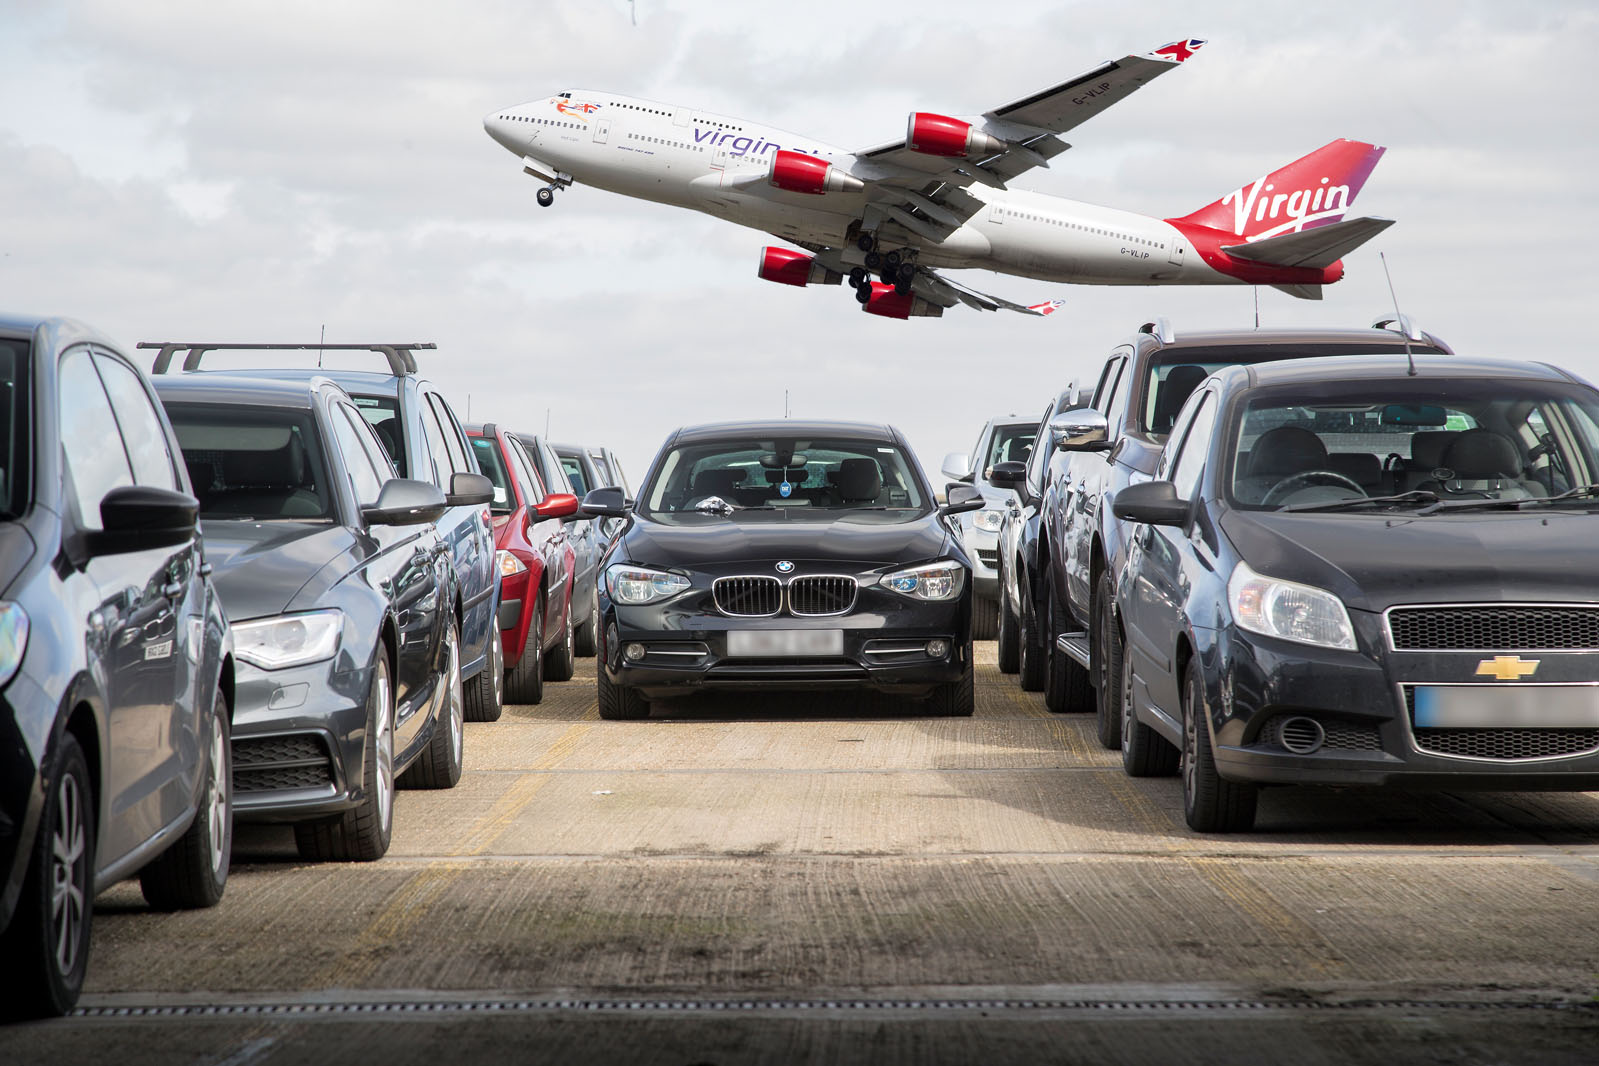 Airport Parking What Really Happens When You Leave Your Car Autocar